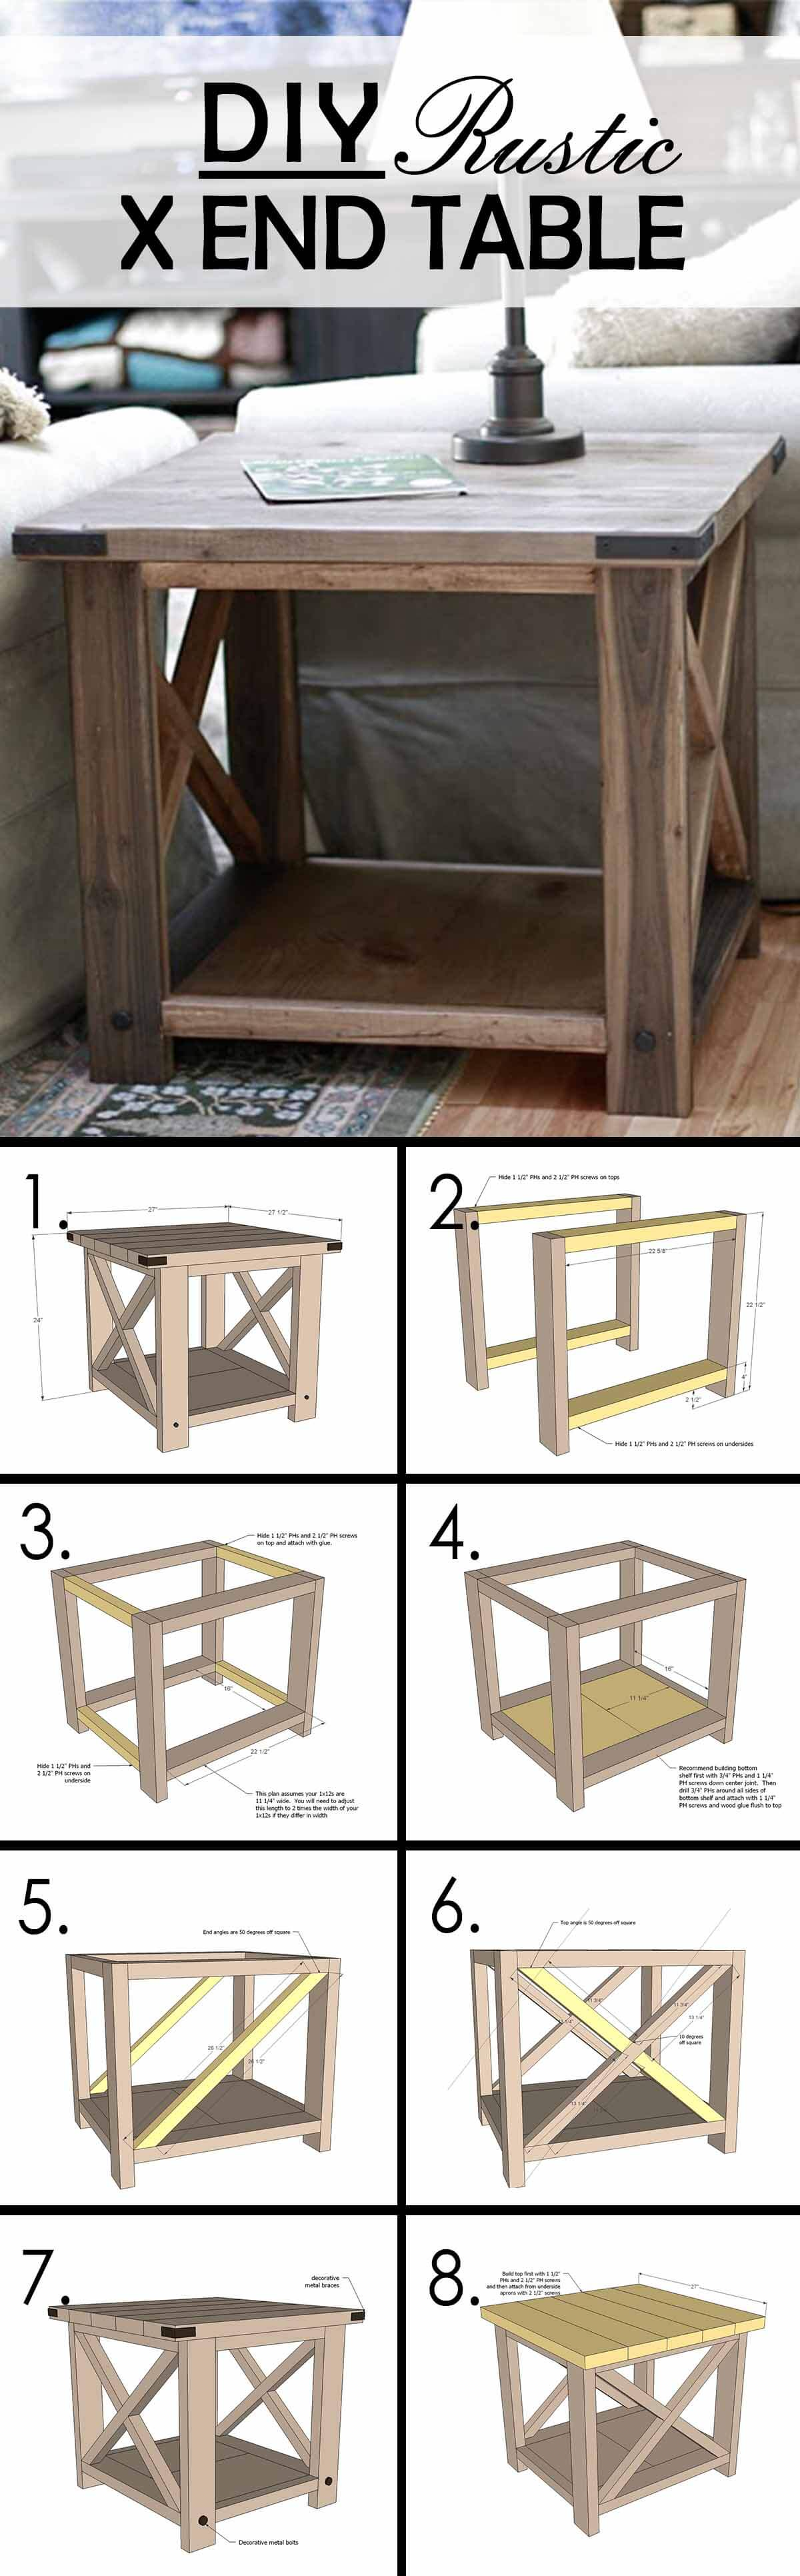 best diy farmhouse coffee table ideas and designs for homebnc small accent build your own rustic cube end tables tool storage cabinet smoked glass round foyer entry patterned lamp